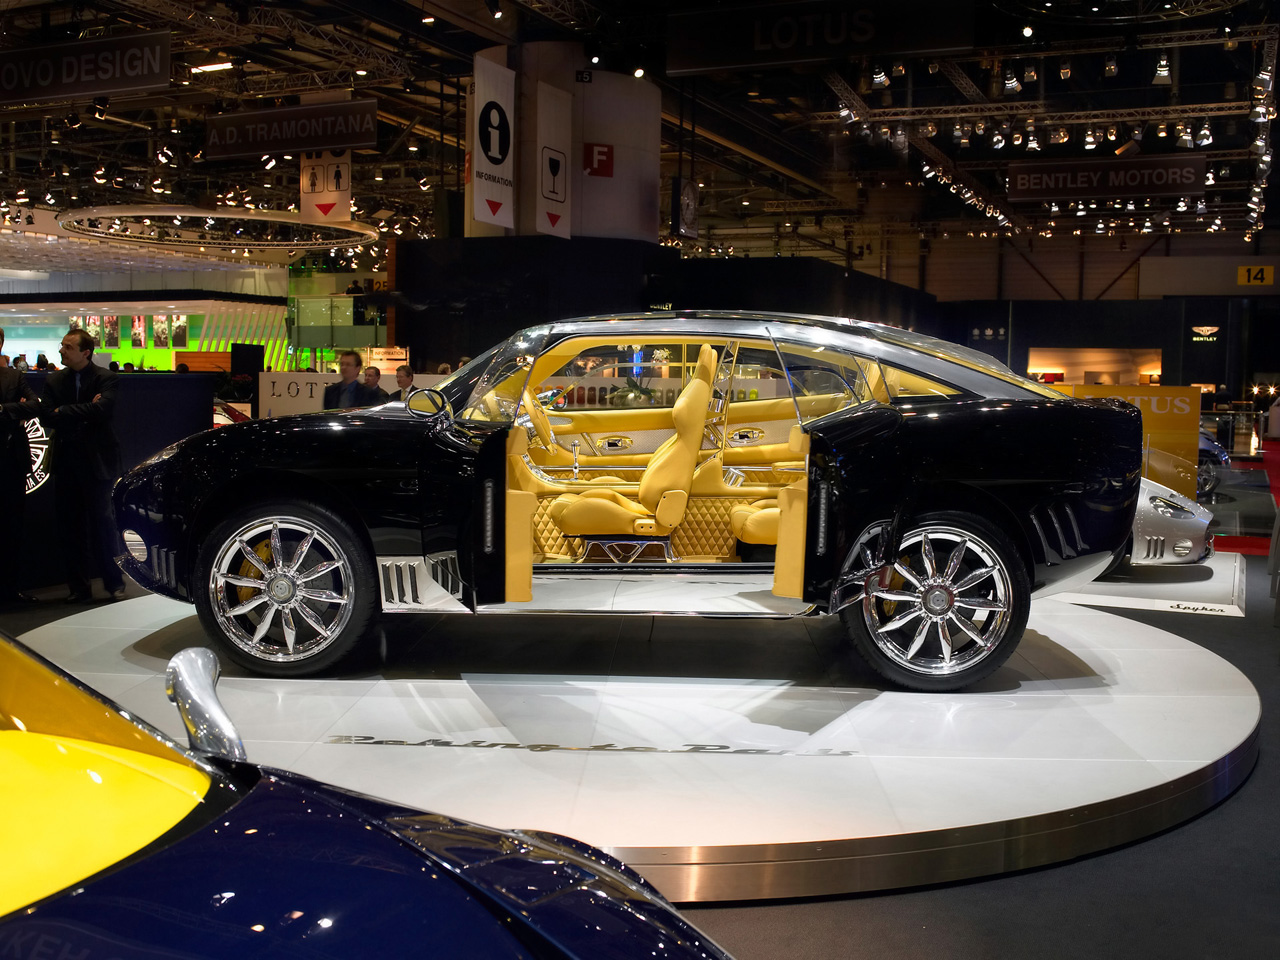 Spyker D12 Peking-to-Paris - 1280 x 960, 13 из 18